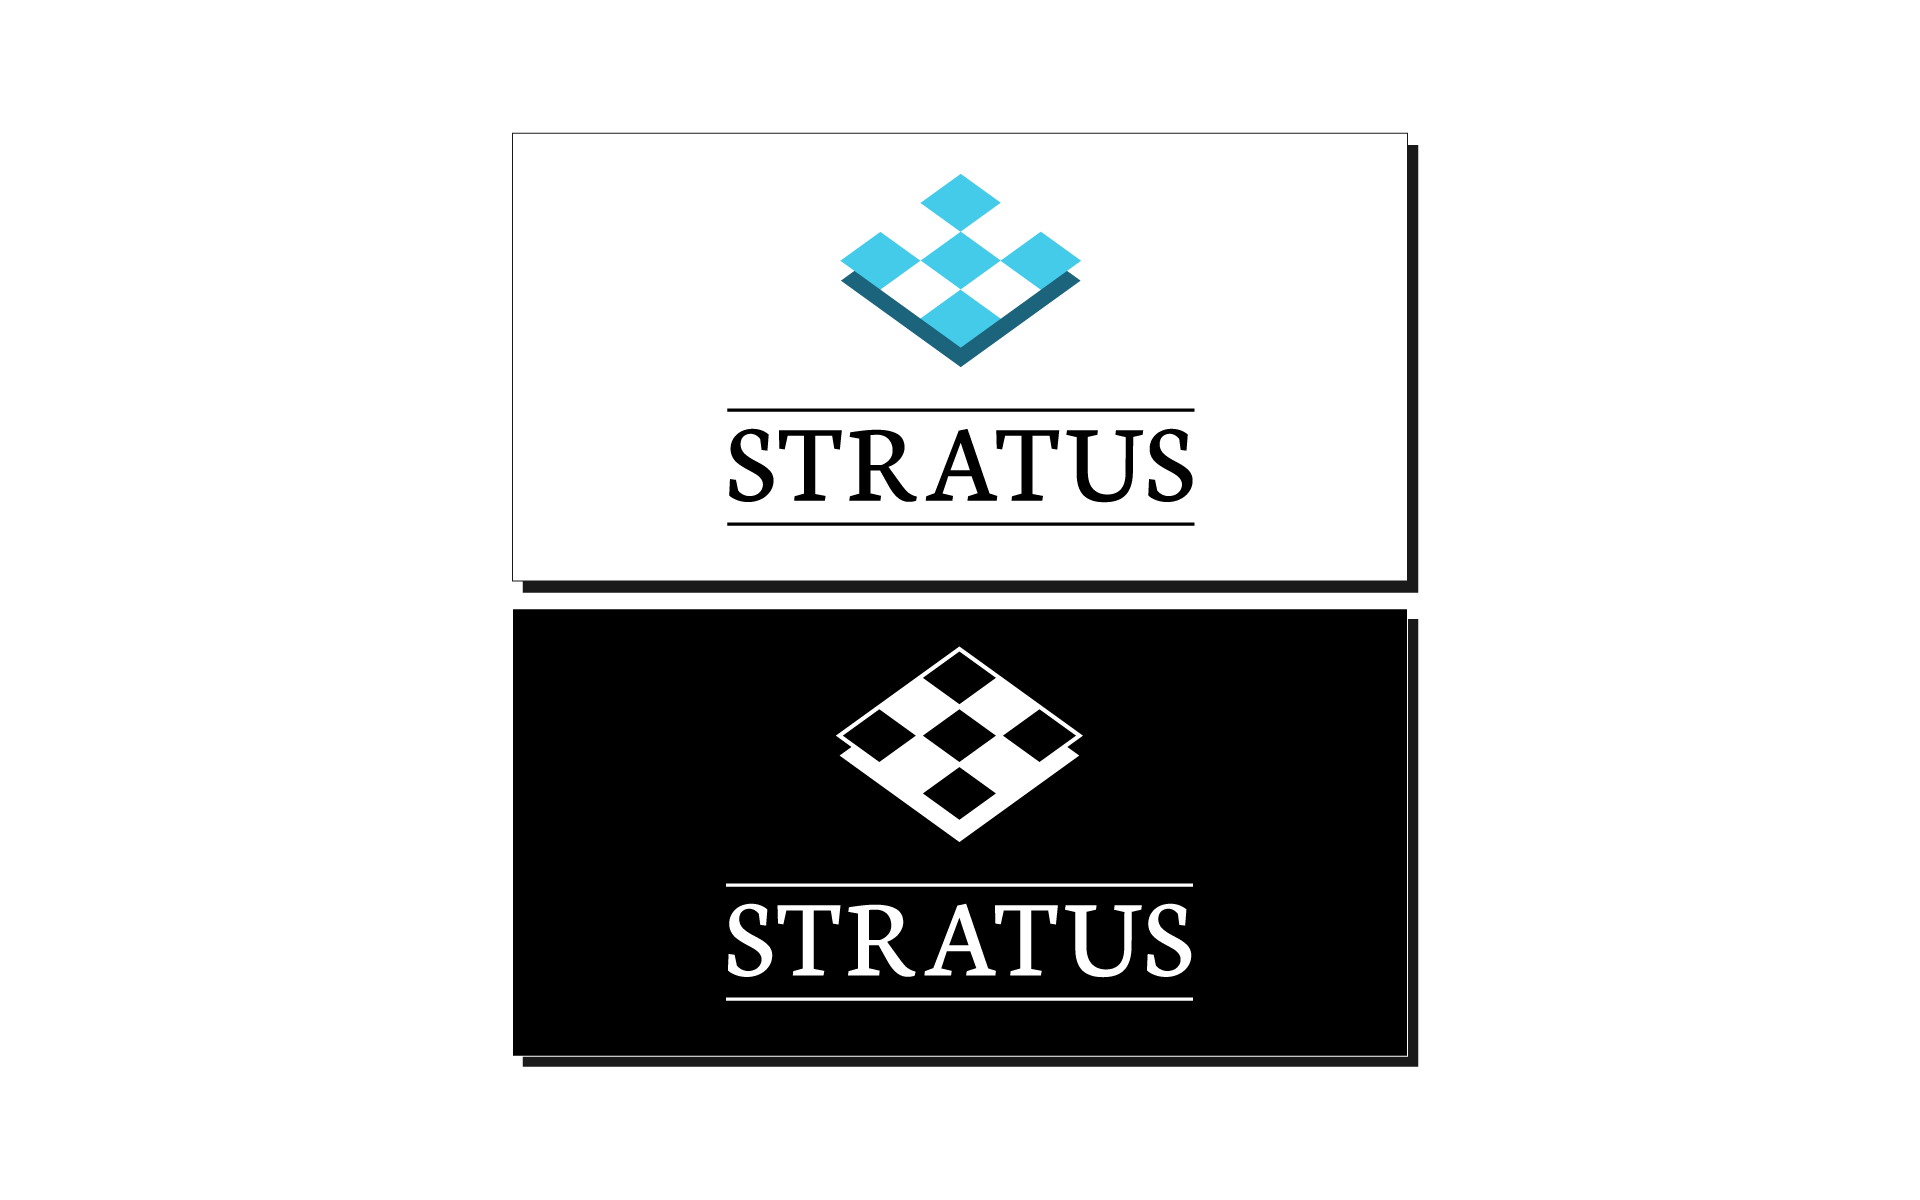 Logo designs for a start-up small business consulting firm.